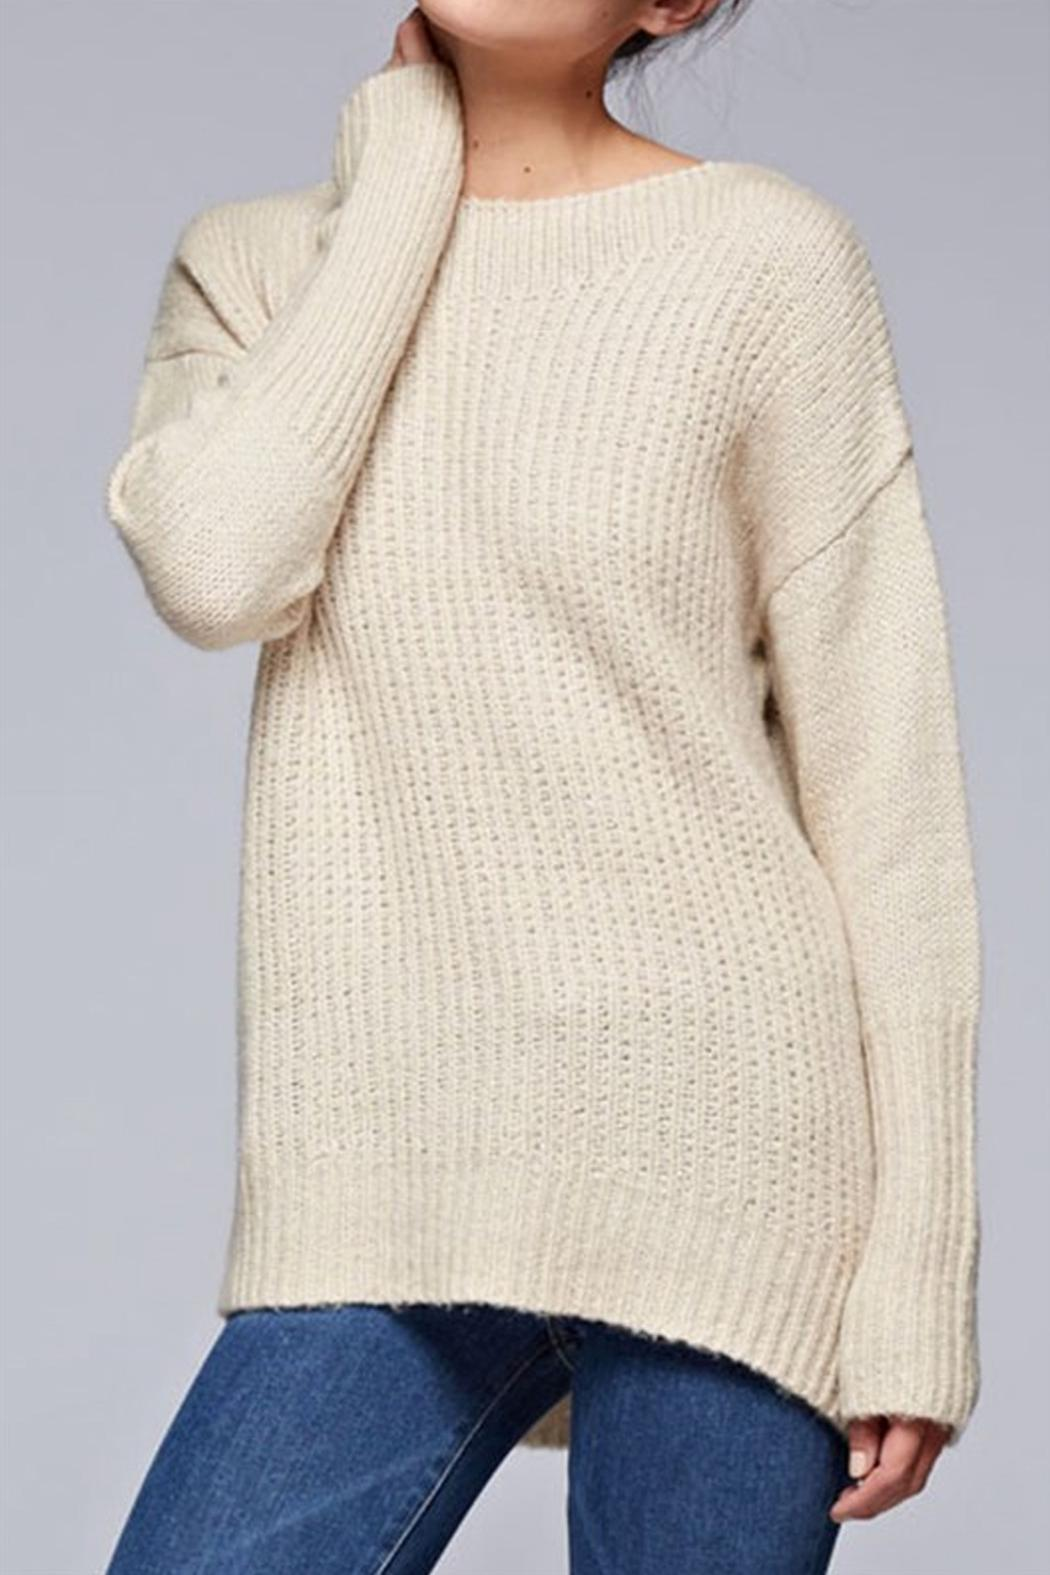 SNAZZY CHIC BOUTIQUE Beige Oversized Sweater - Main Image